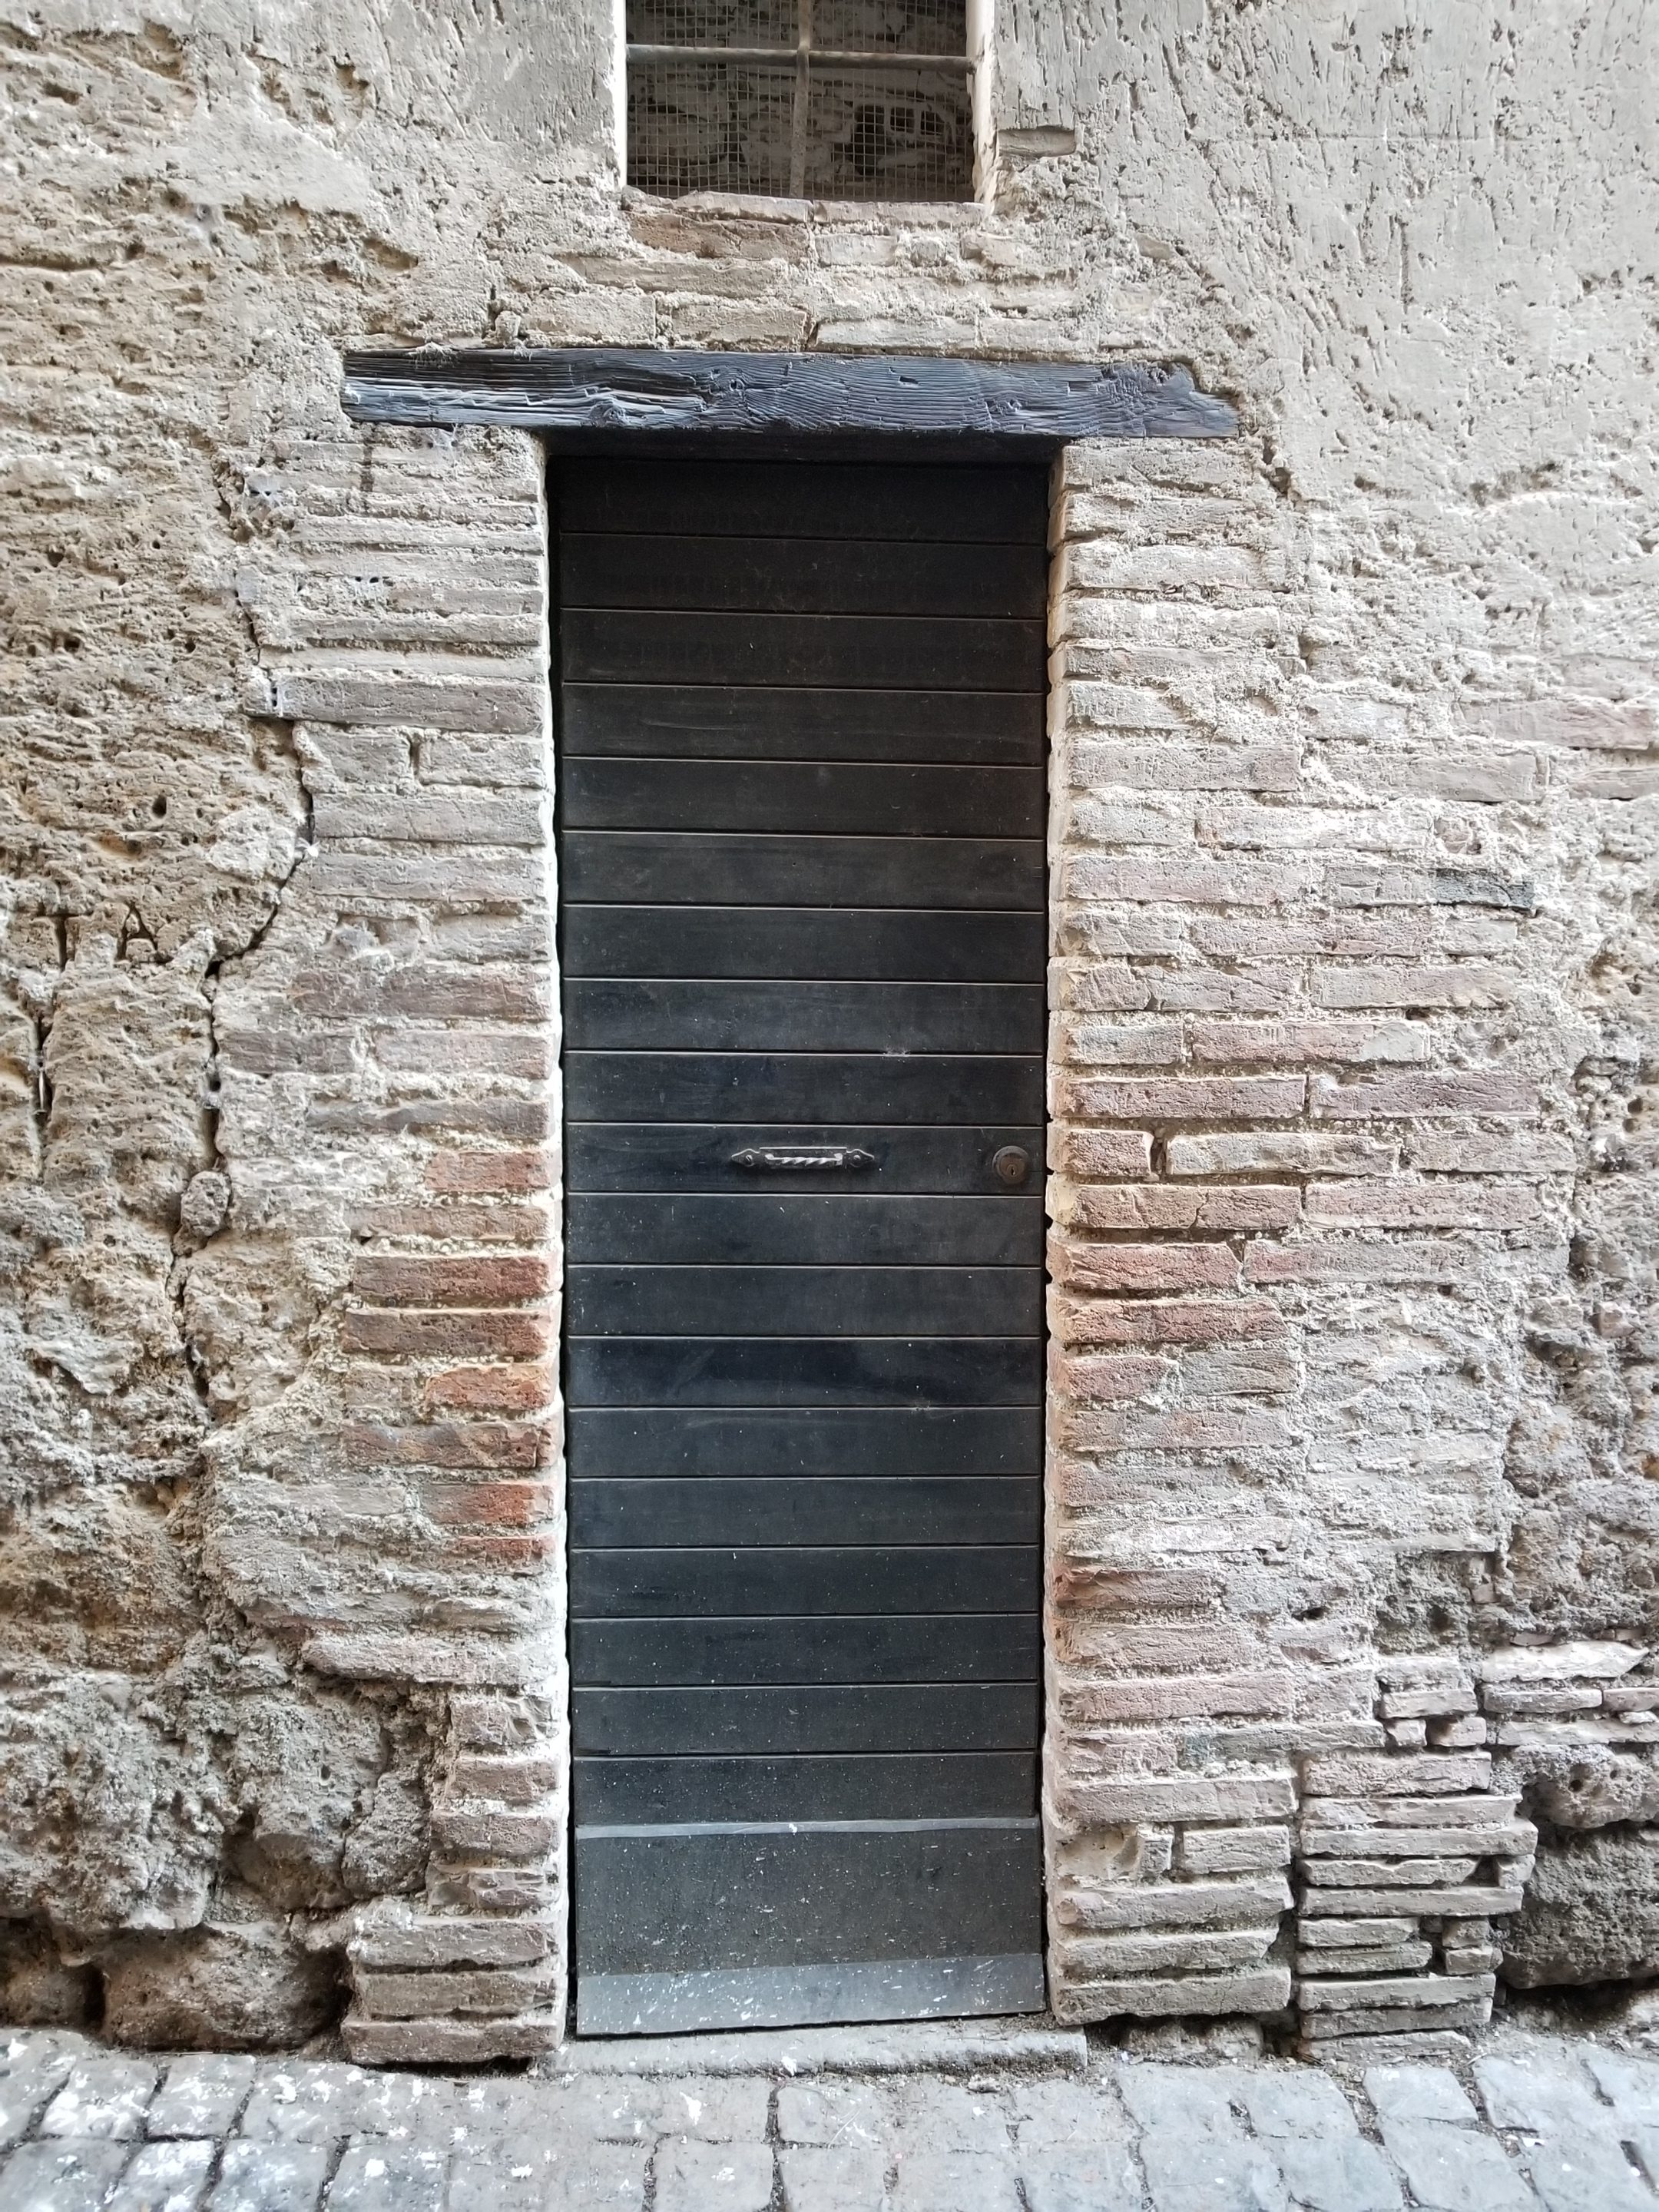 wooden doors, Discover the old Etruscan city and its hidden treasures in Orvieto, ouritalianjourney.com